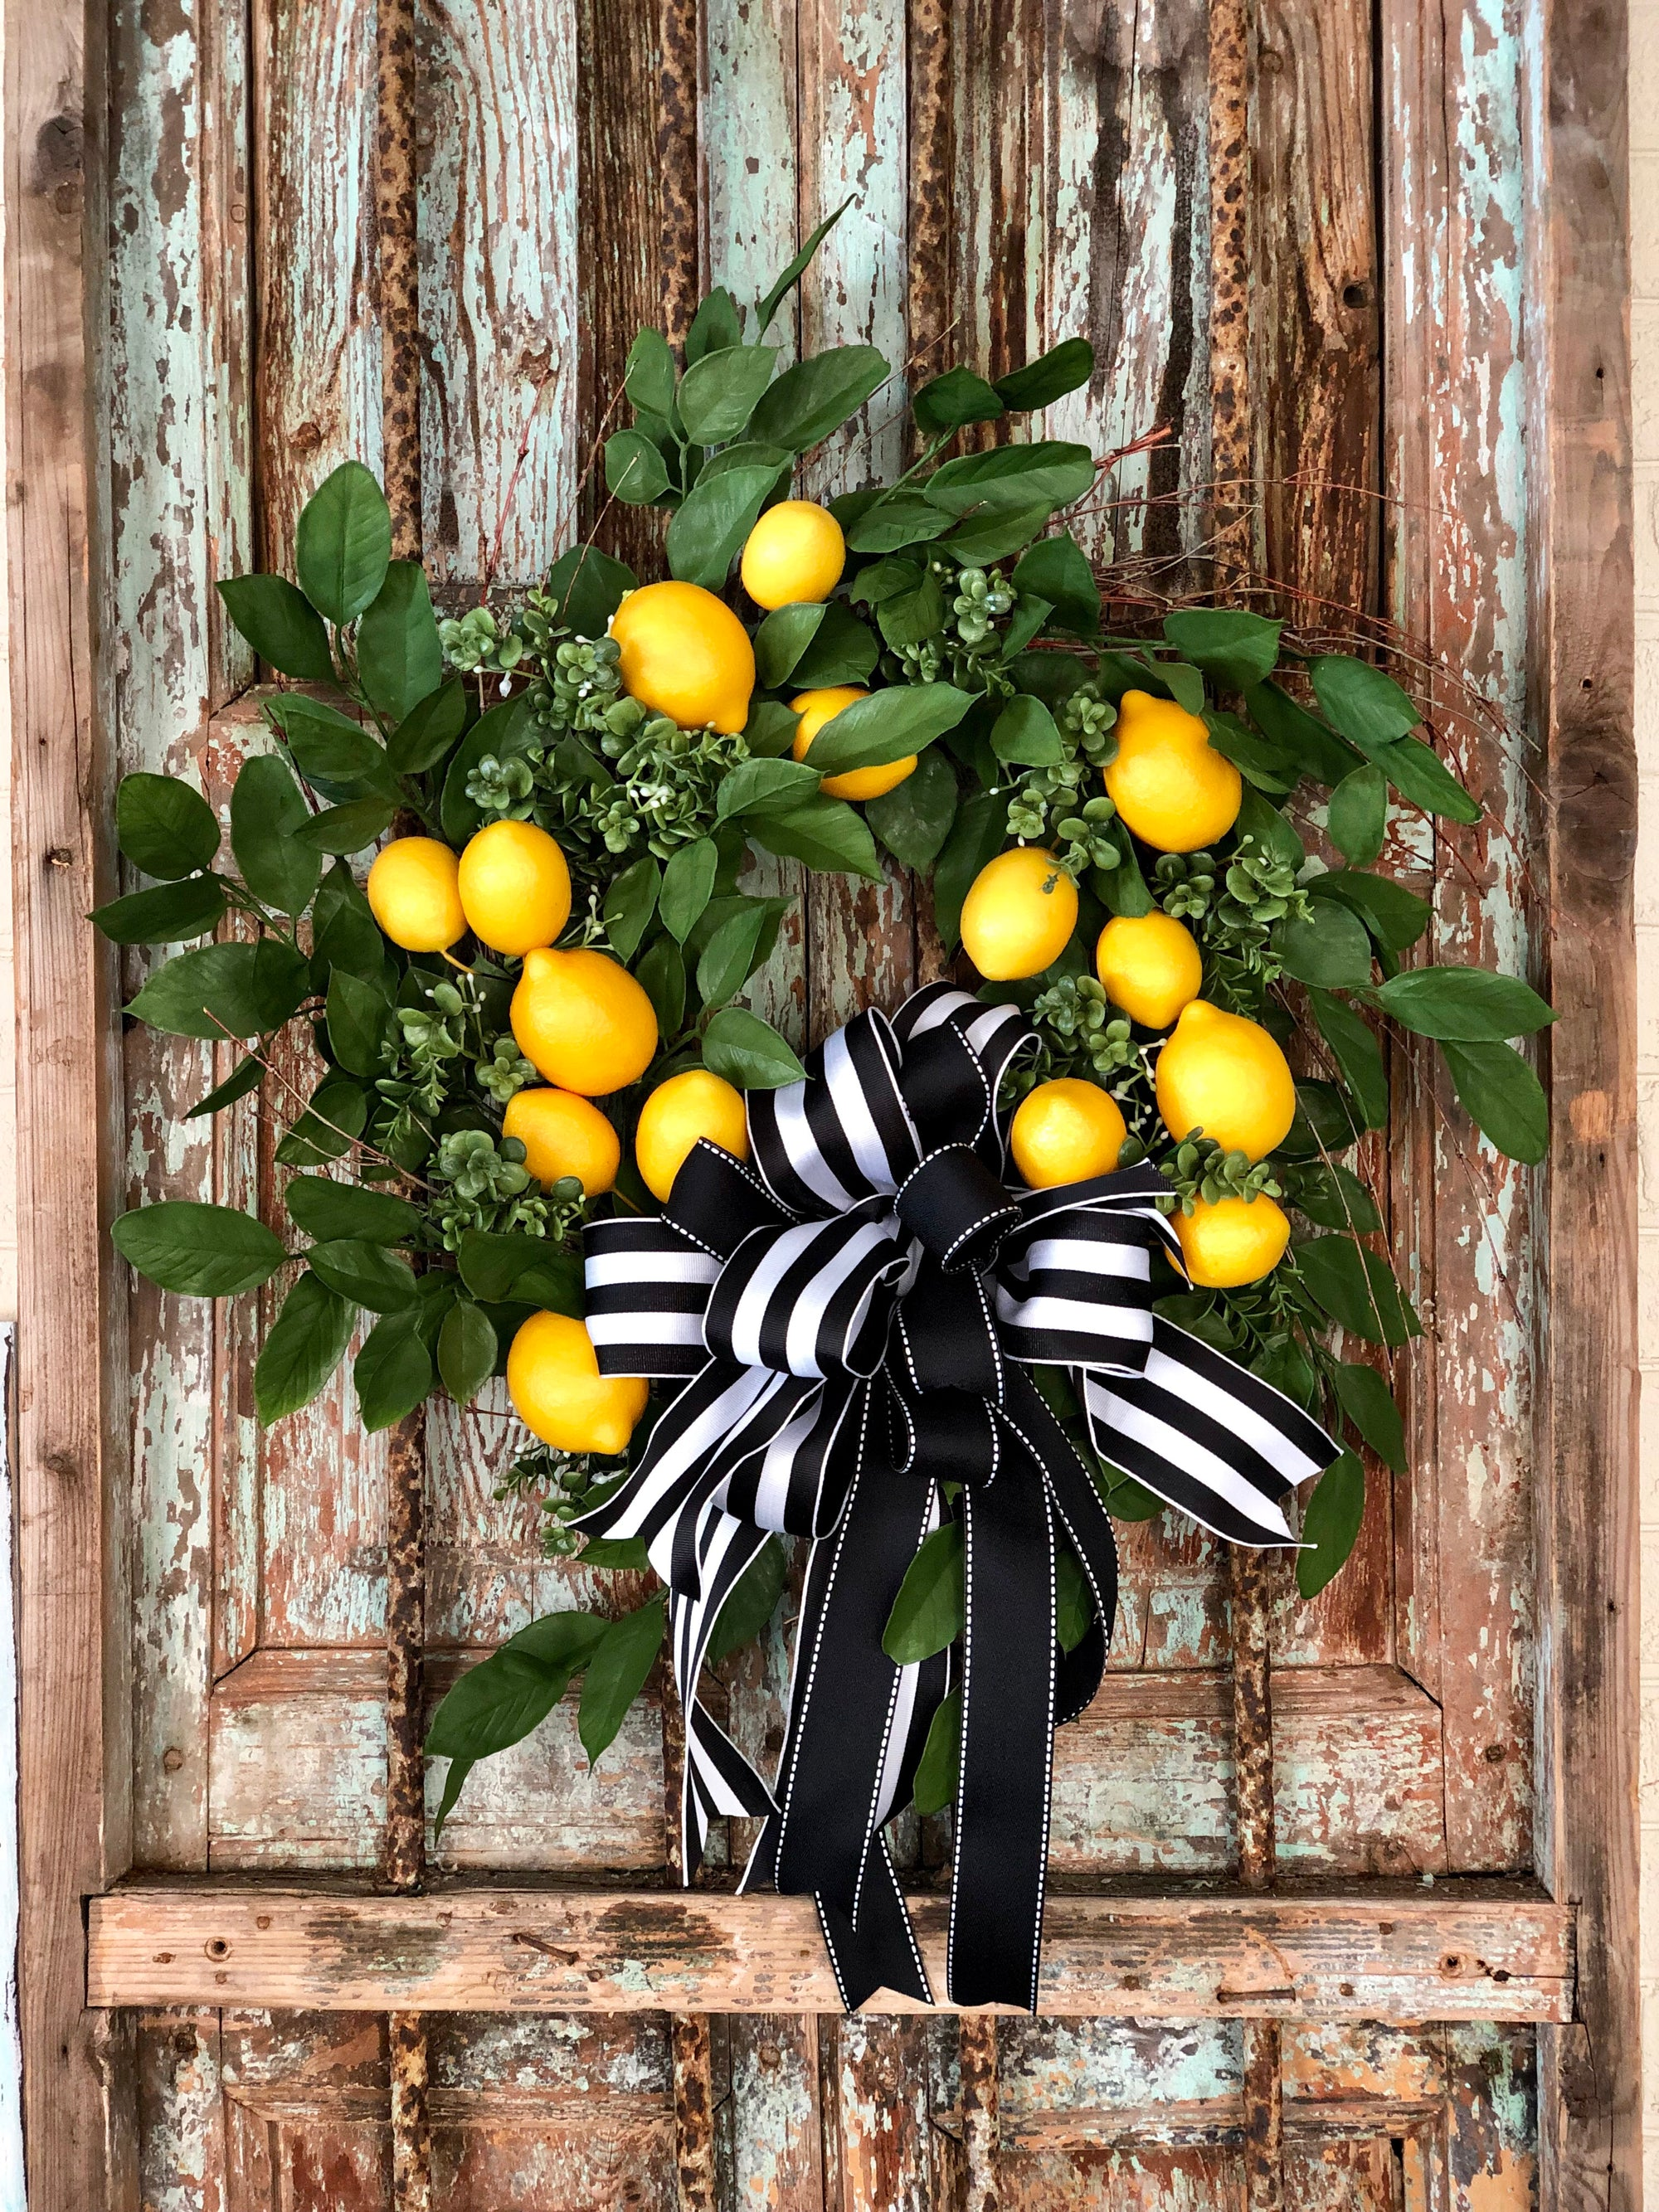 The Laurel Lemon Wreath